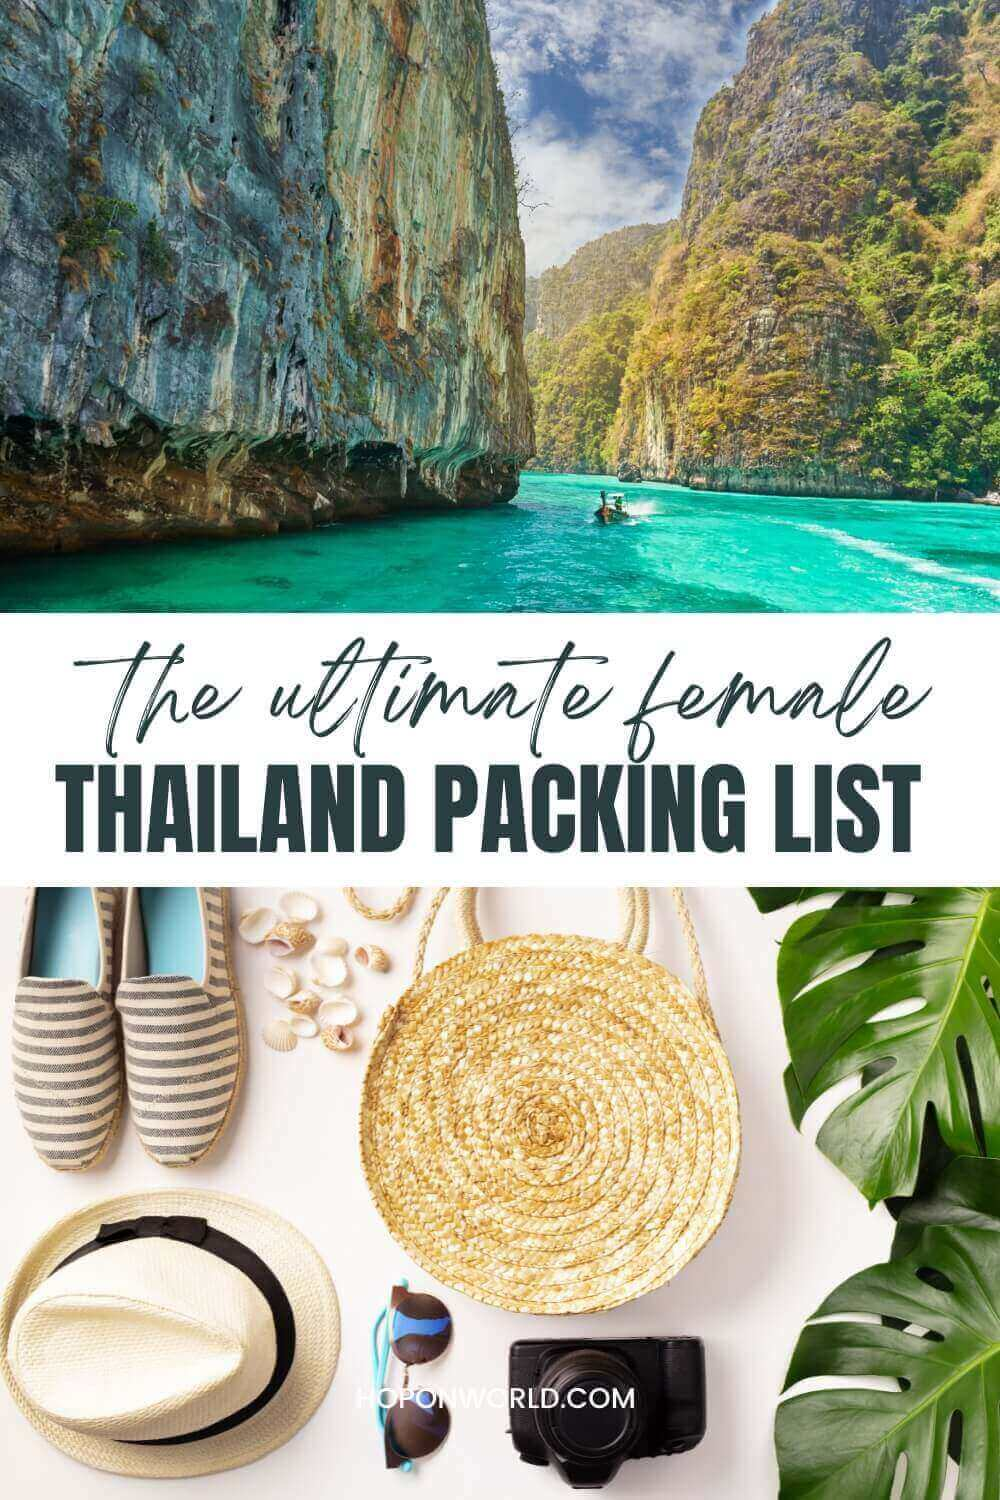 Planning a trip to Thailand and wondering what to pack? Use this super handy Thailand packing list to help you figure out what essentials to bring along for a seamless Thailand trip! thailand packing list | thailand packing list for women | traveling to thailand packing lists | packing list for thailand | thailand trip | thailand travel clothes outfits